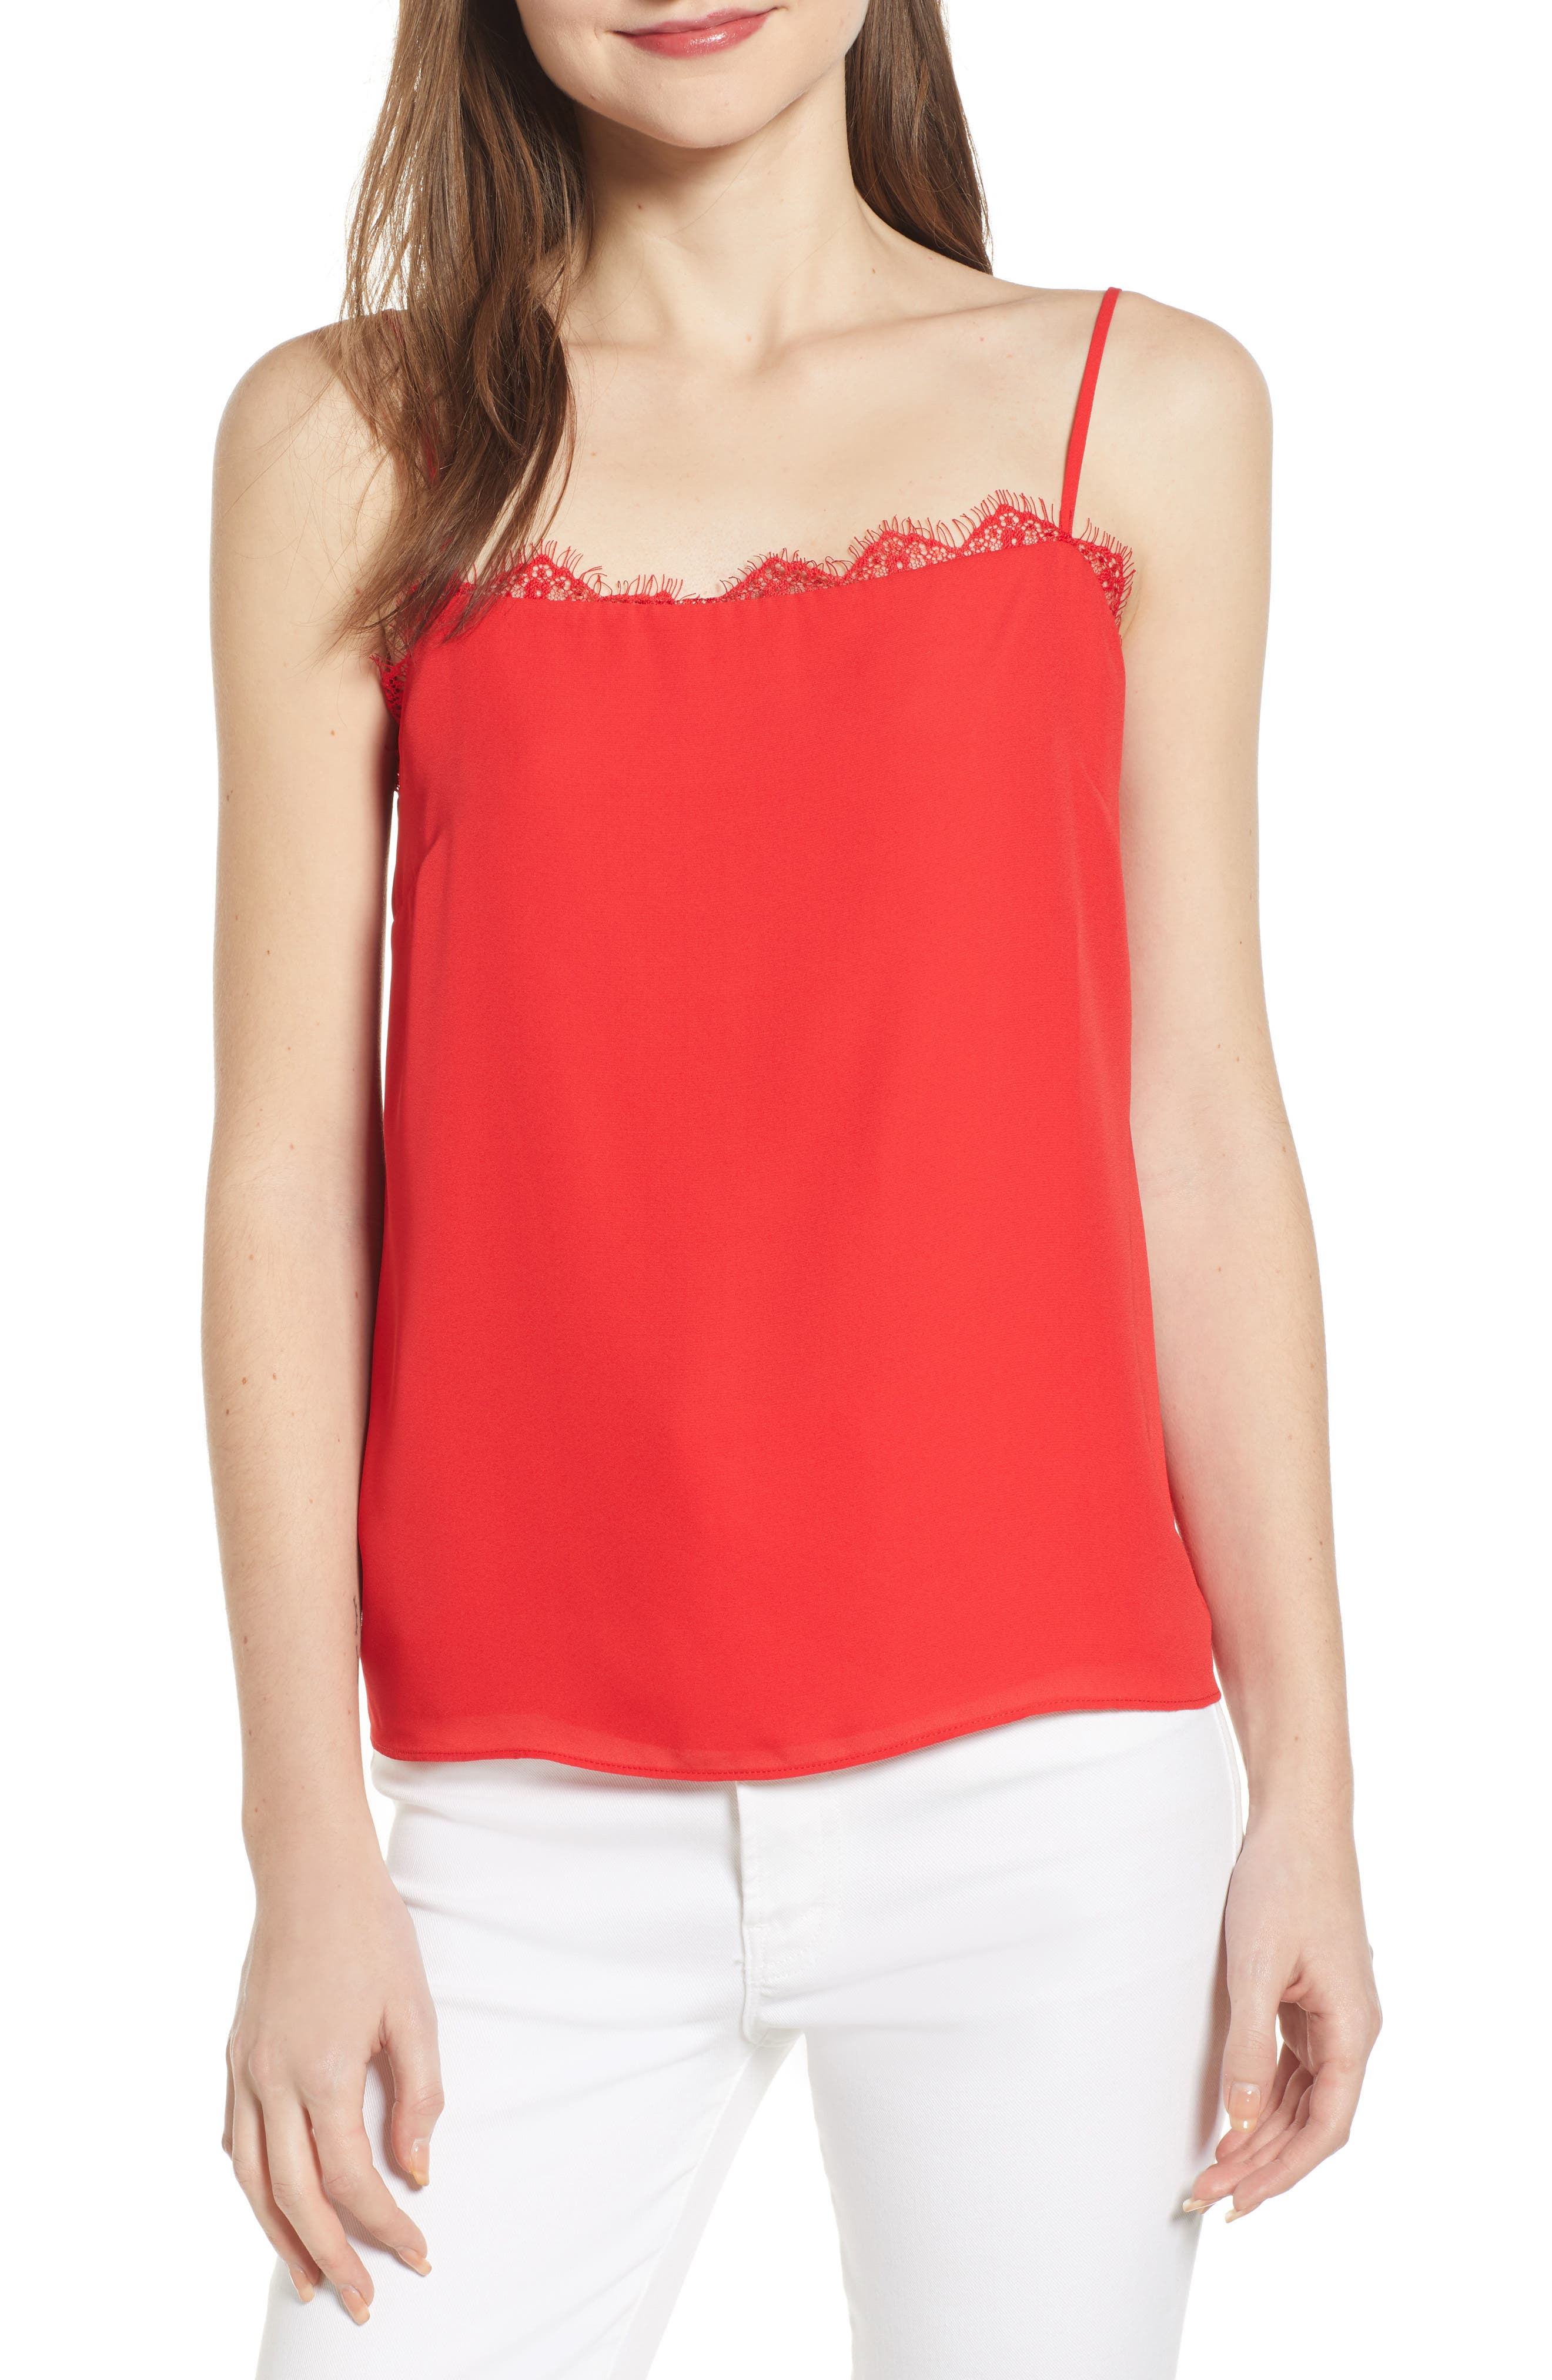 Socialite Lace Trim Camisole, Red